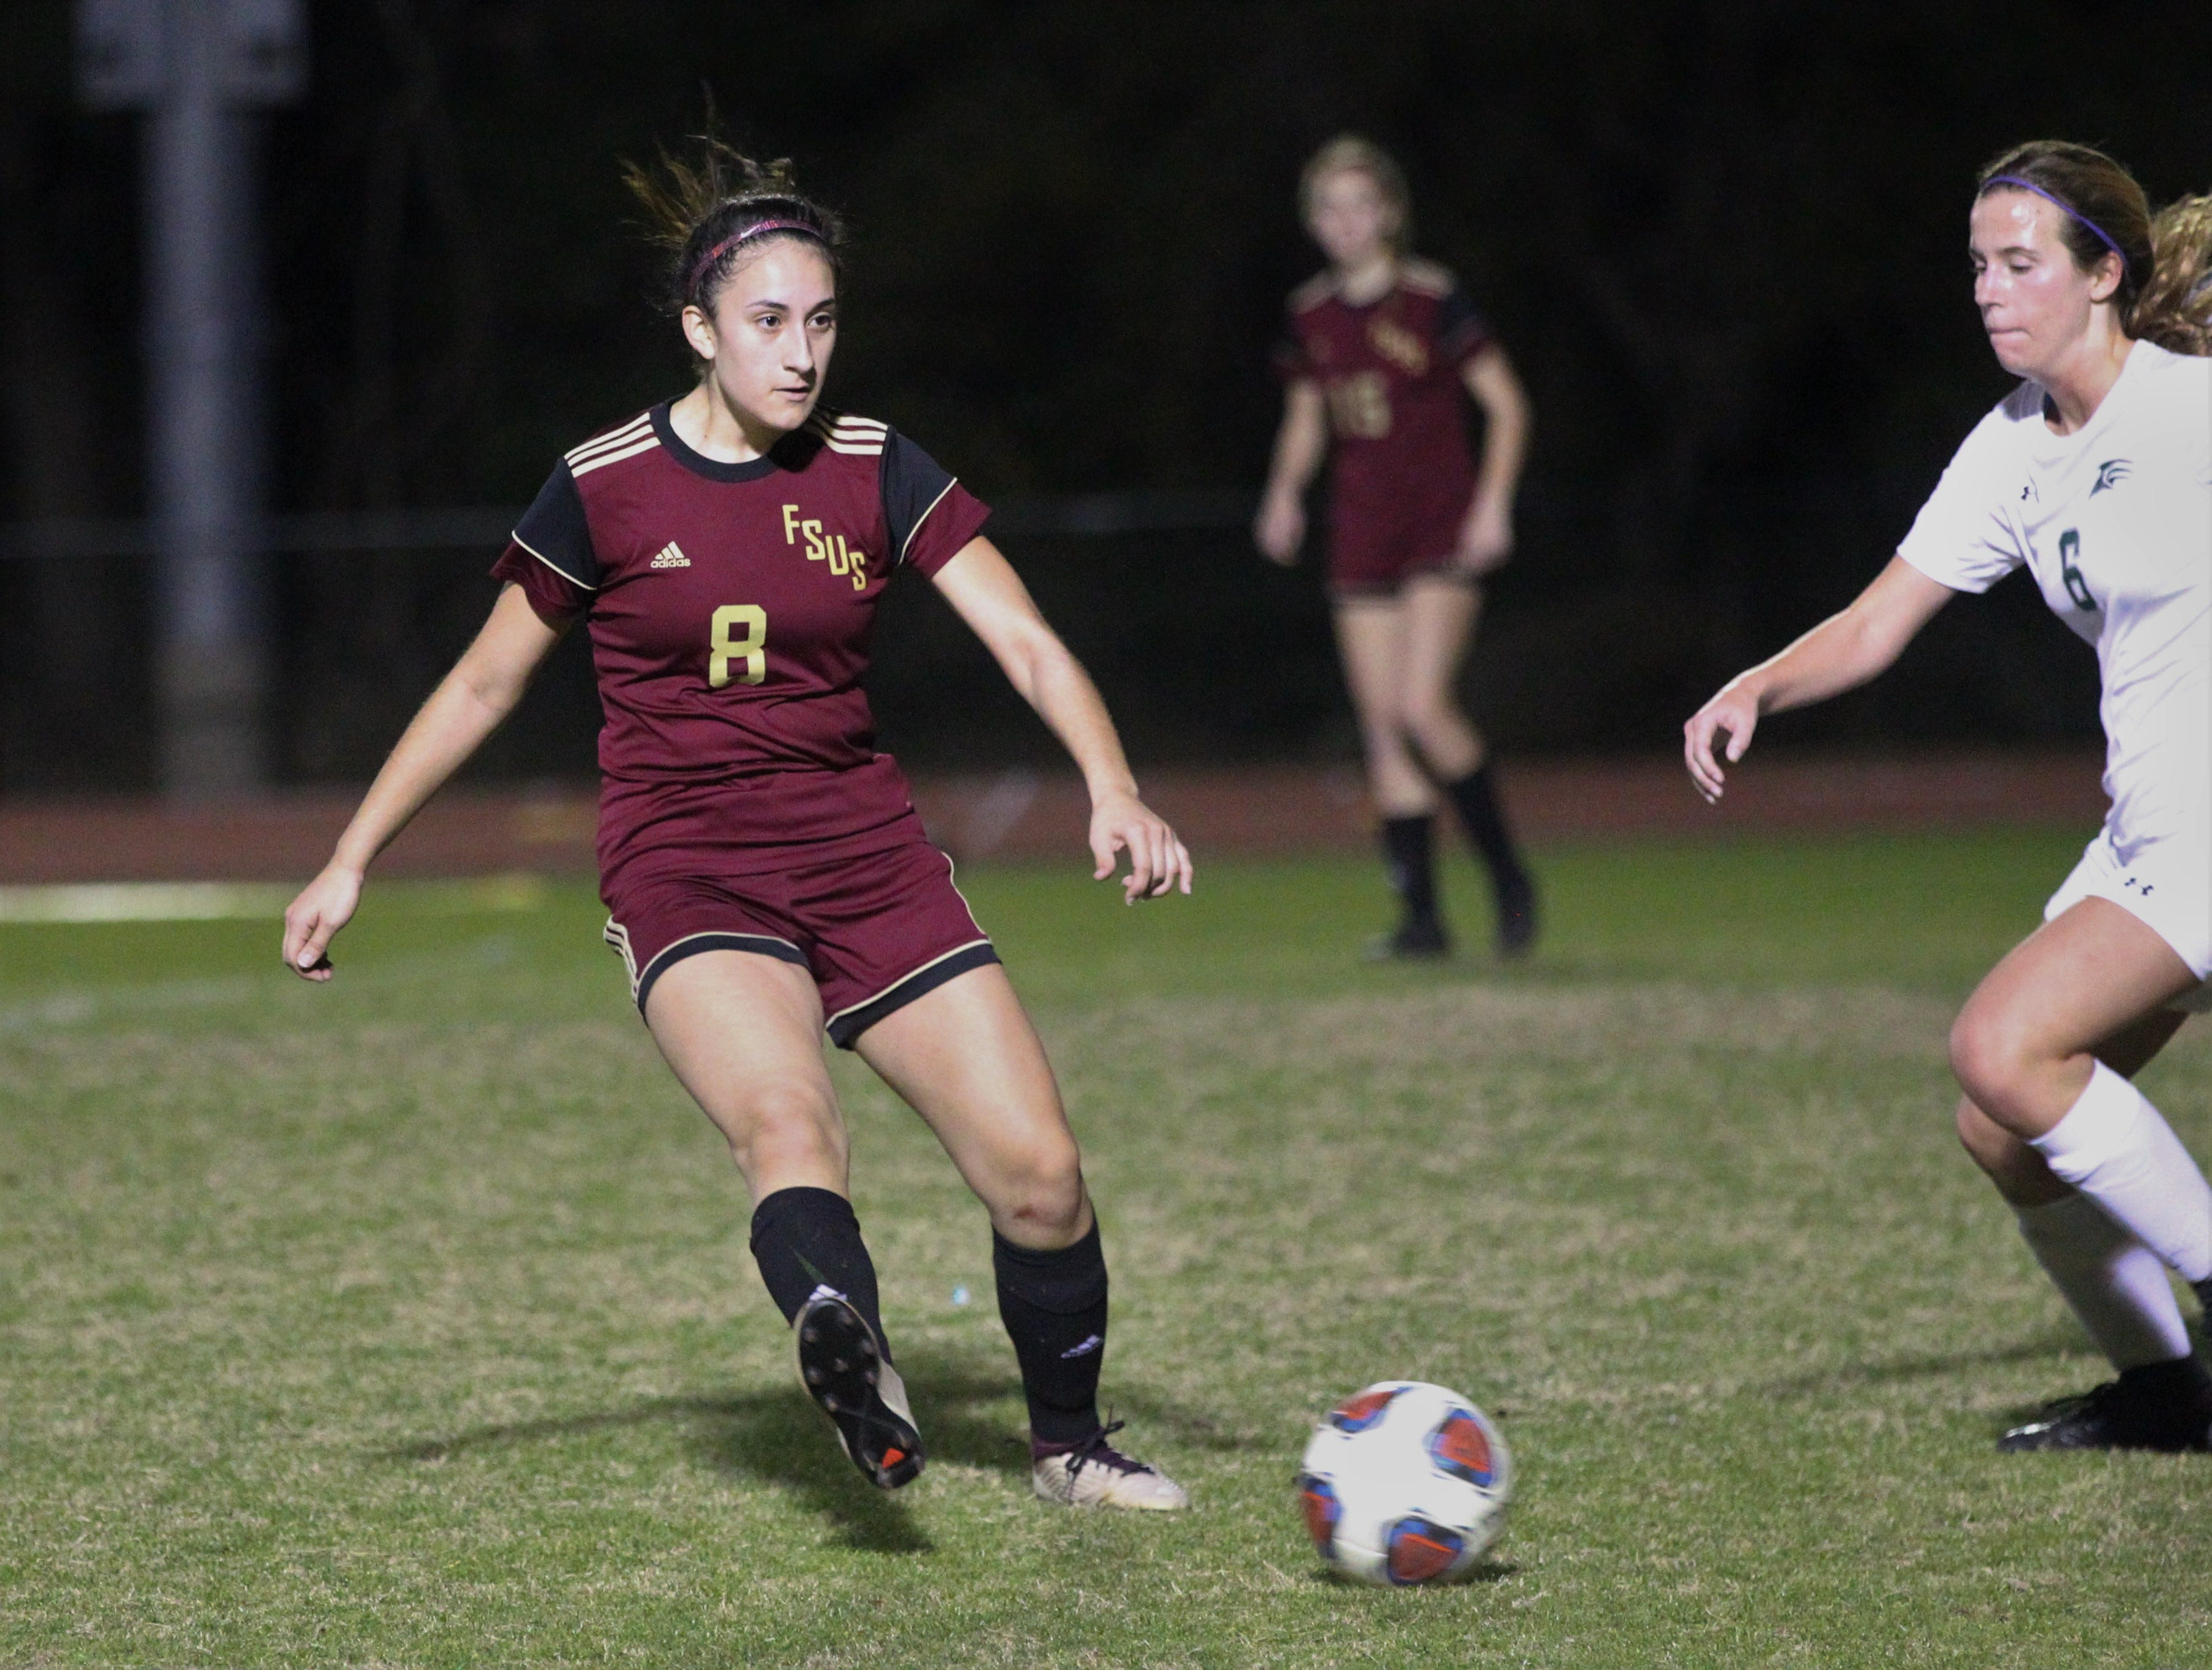 Florida High's Lily Quijada passes ahead as South Walton edged the Seminoles 5-4 in a penalty-kick shootout during a Region 1-2A semifinal on Feb. 8, 2019.